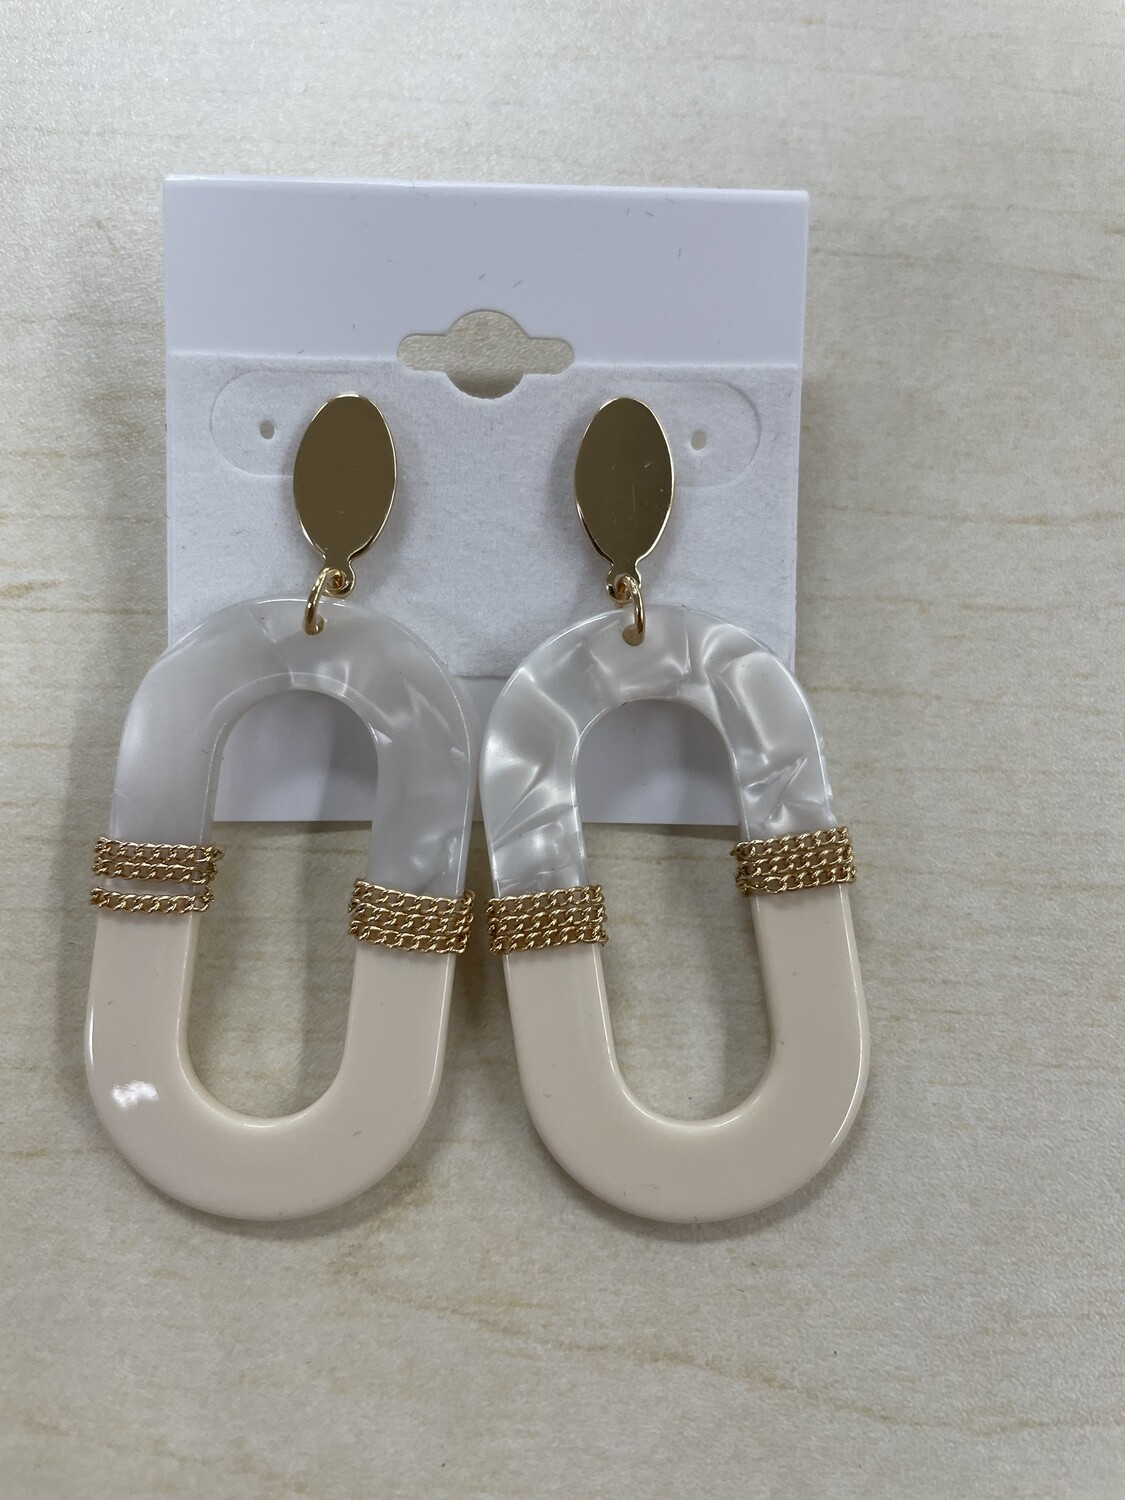 Cream with Marble Oval Shaped Stud Earrings